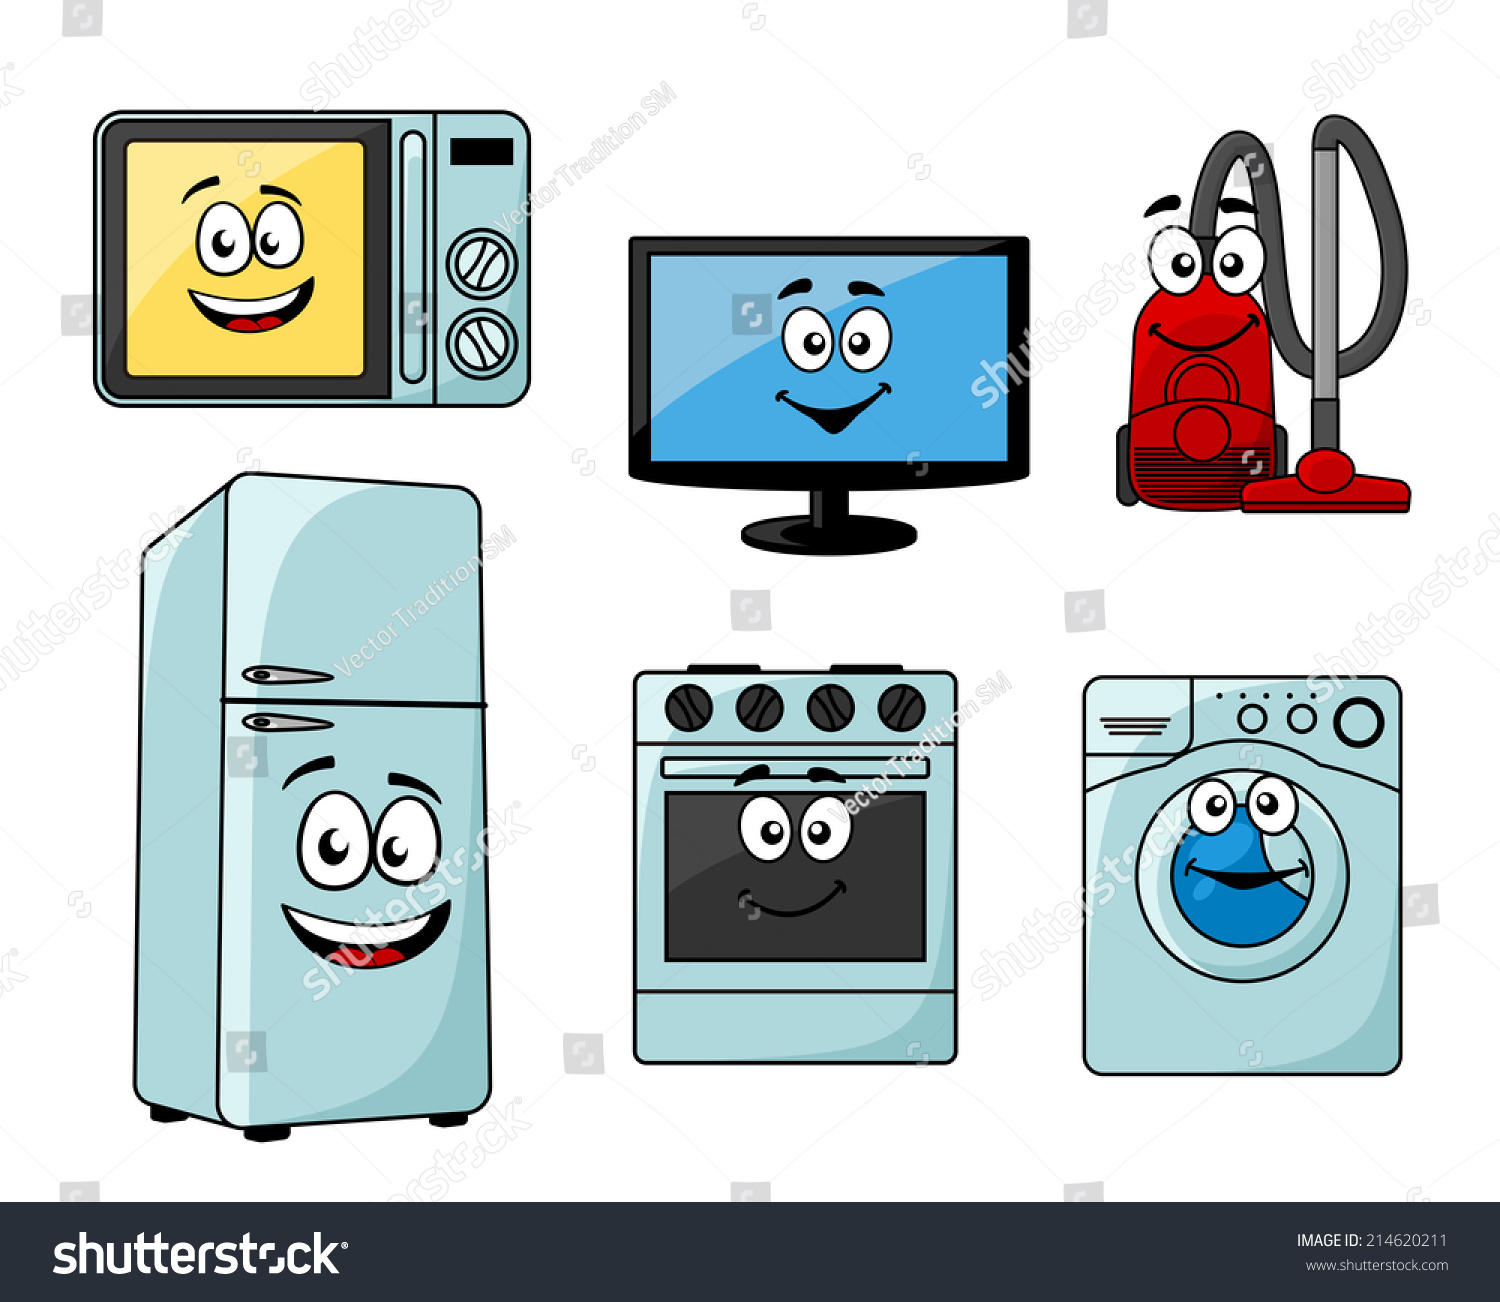 Kitchen Appliances Clip Art ~ Cartoon household appliances set microwave tv stock vector